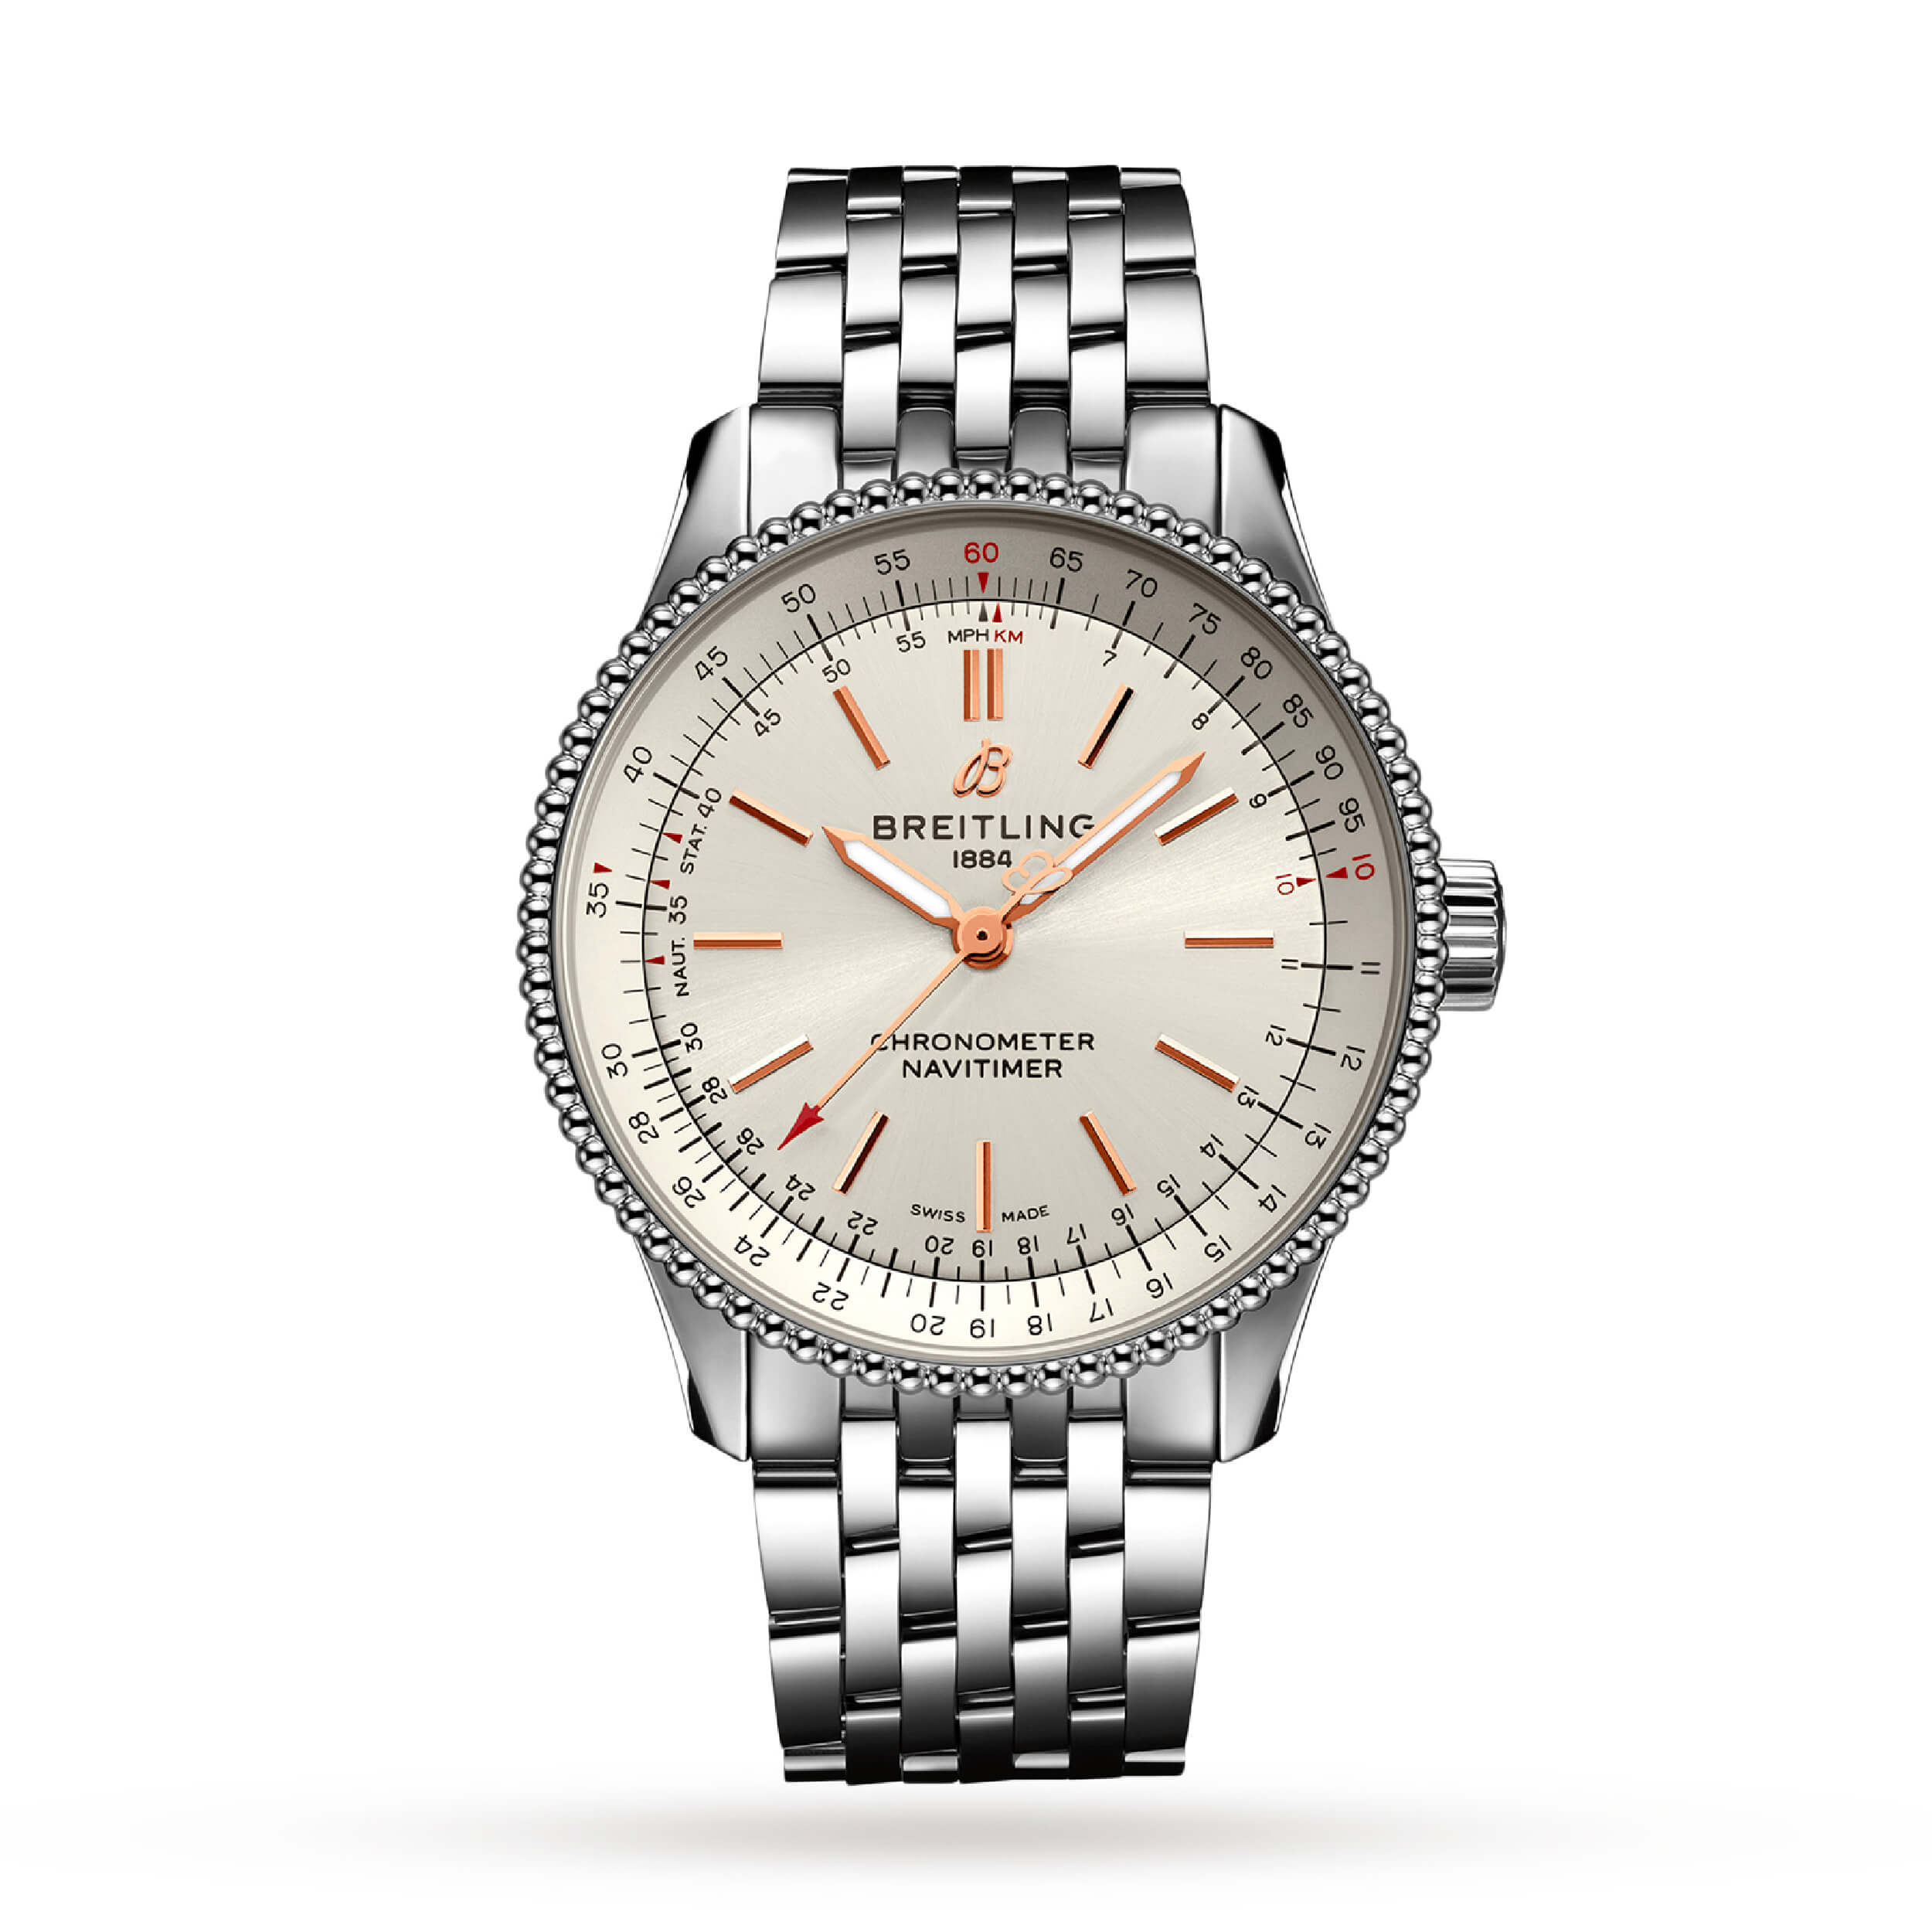 Breitling Navitimer 35mm Ladies | Best Luxury Watches for Women